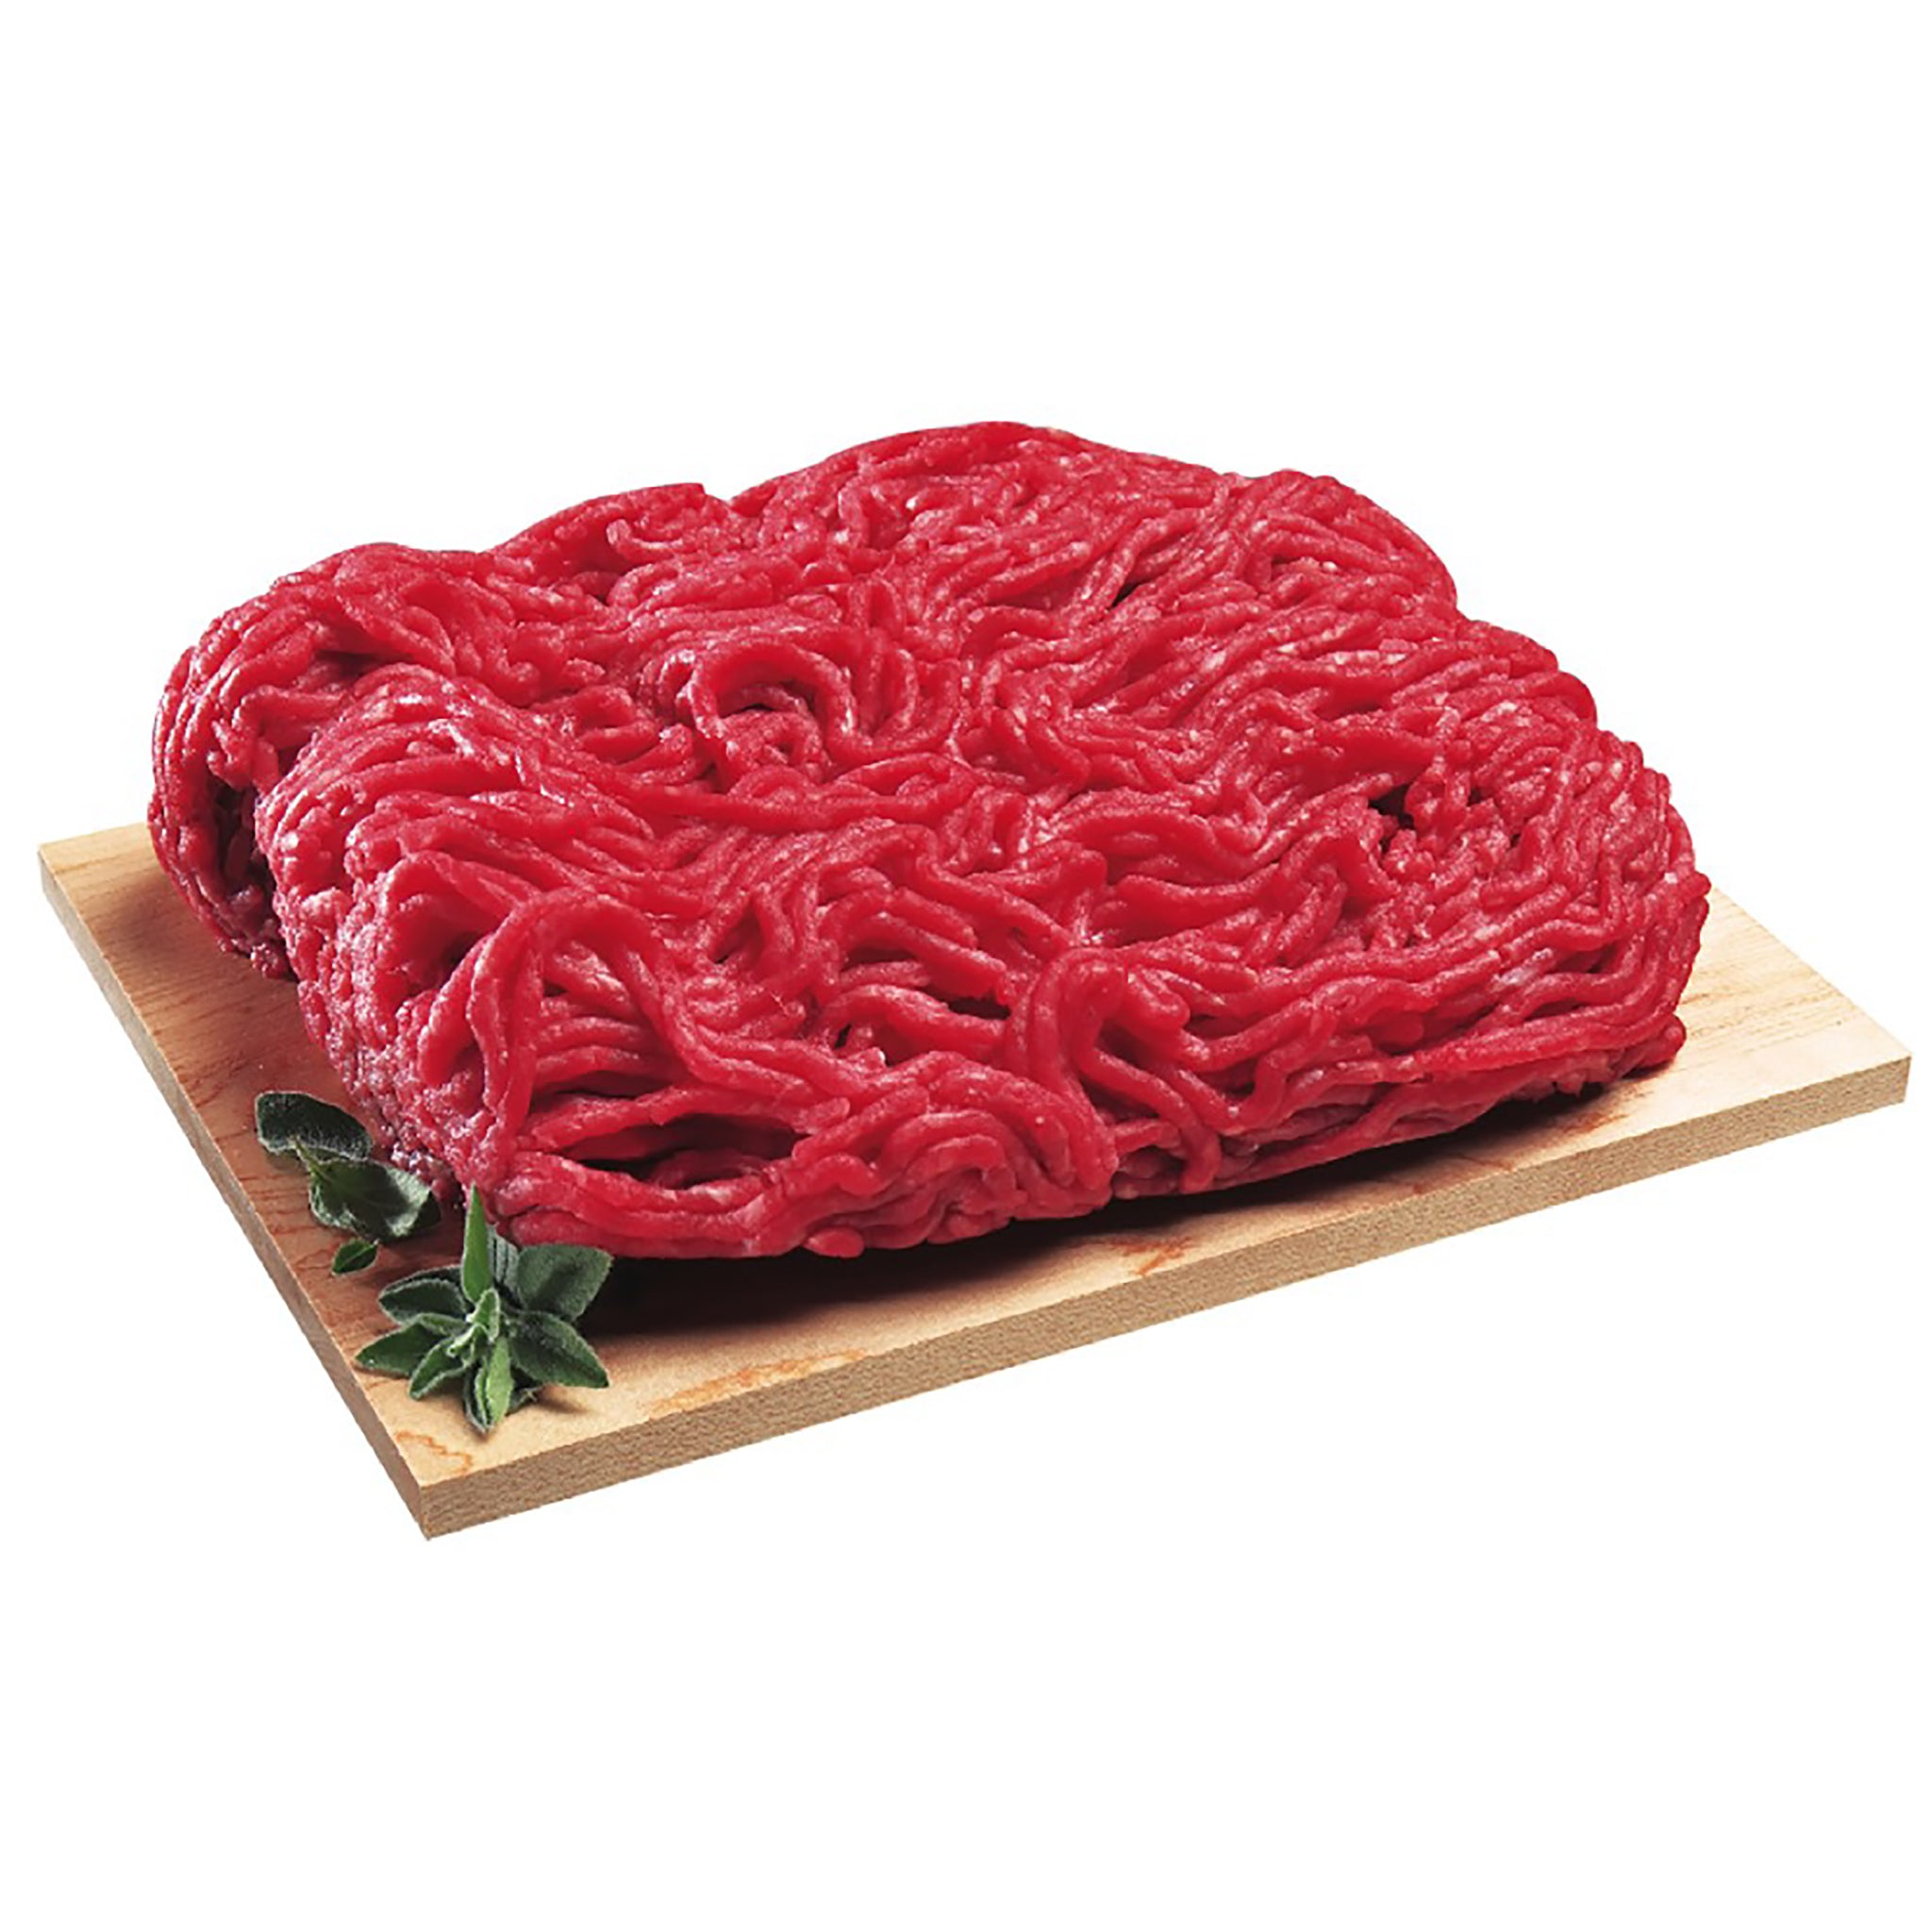 Extra Lean Ground Beef/ lb